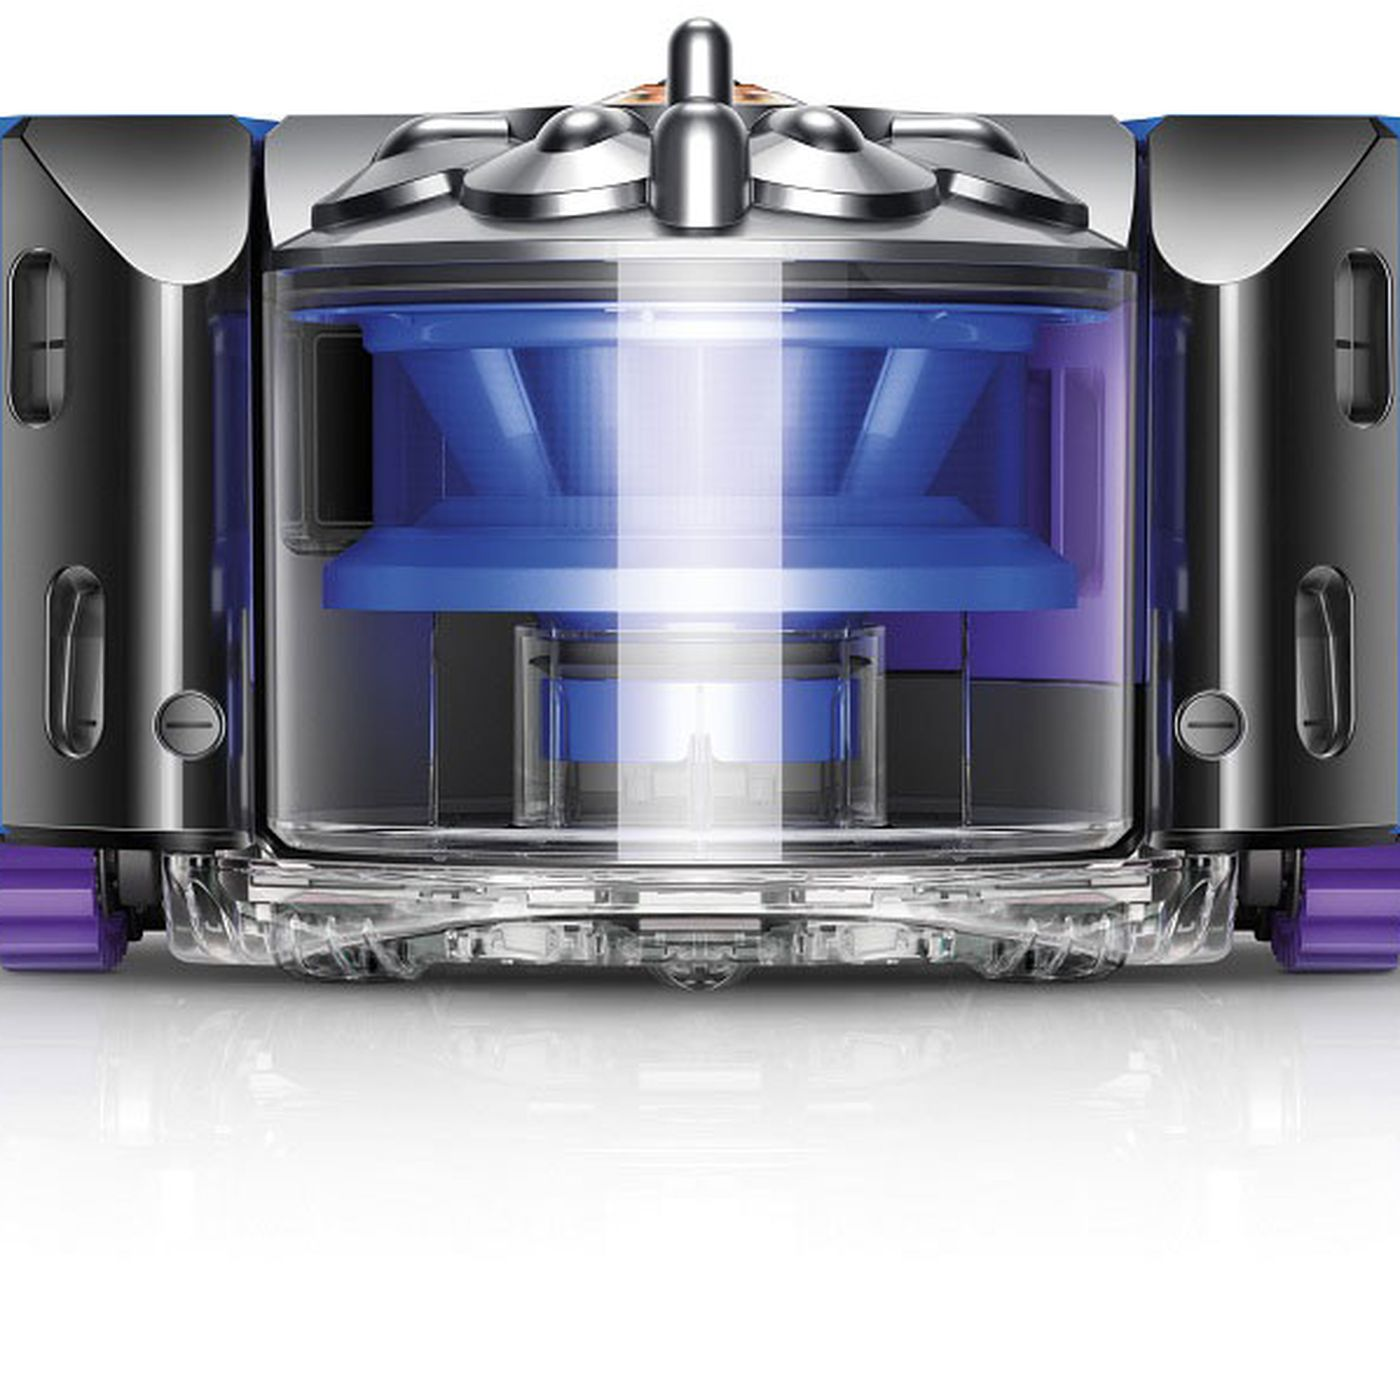 Dyson Announces Its New Robot Vacuum The 360 Heurist